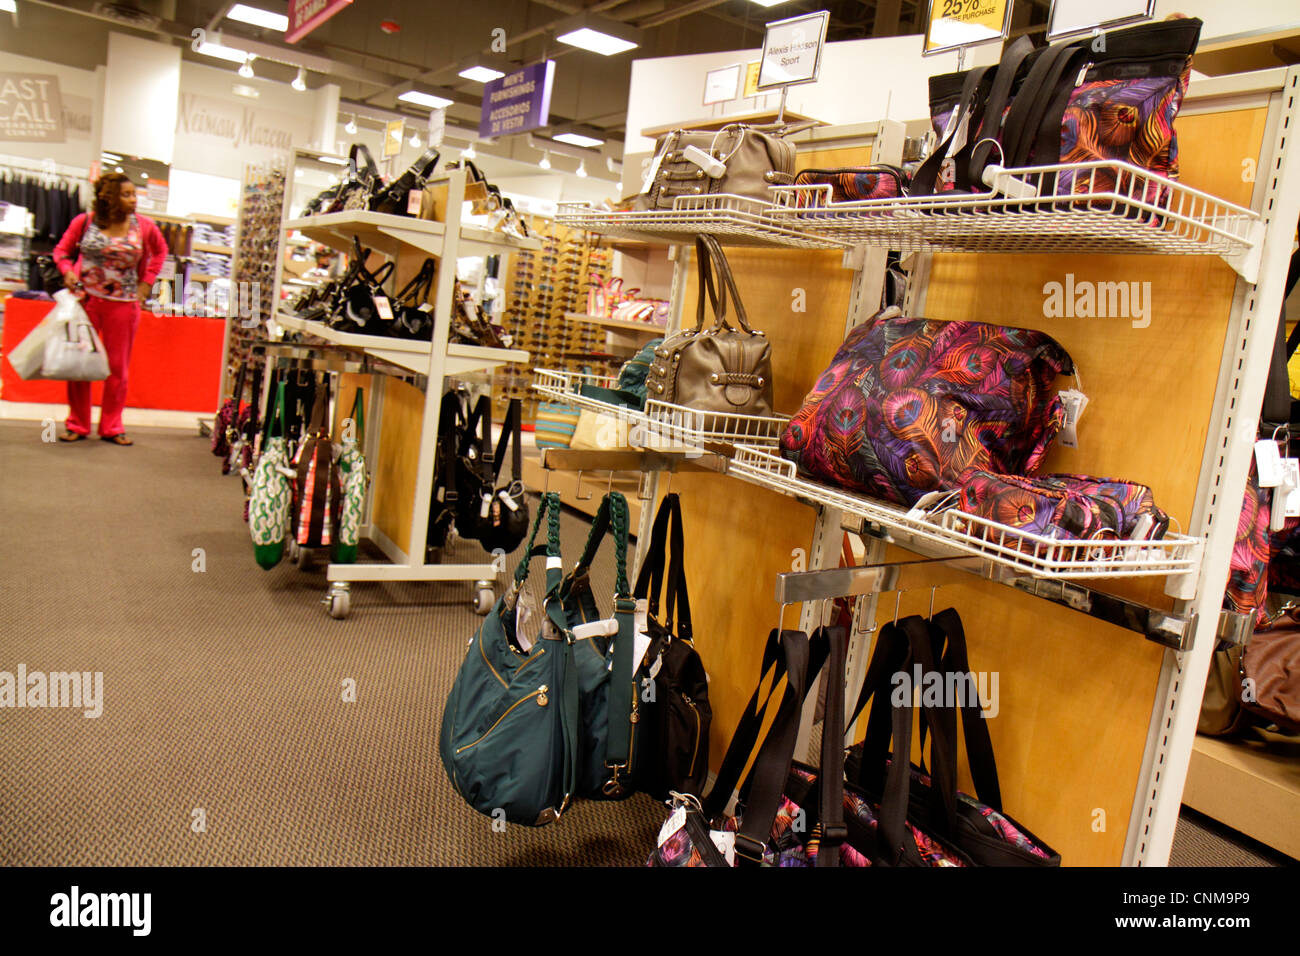 Miami Florida Sweetwater Dolphin Mall shopping Neiman Marcus Last Call  Clearance Center centre women s handbags - e2a06b61ccd1b